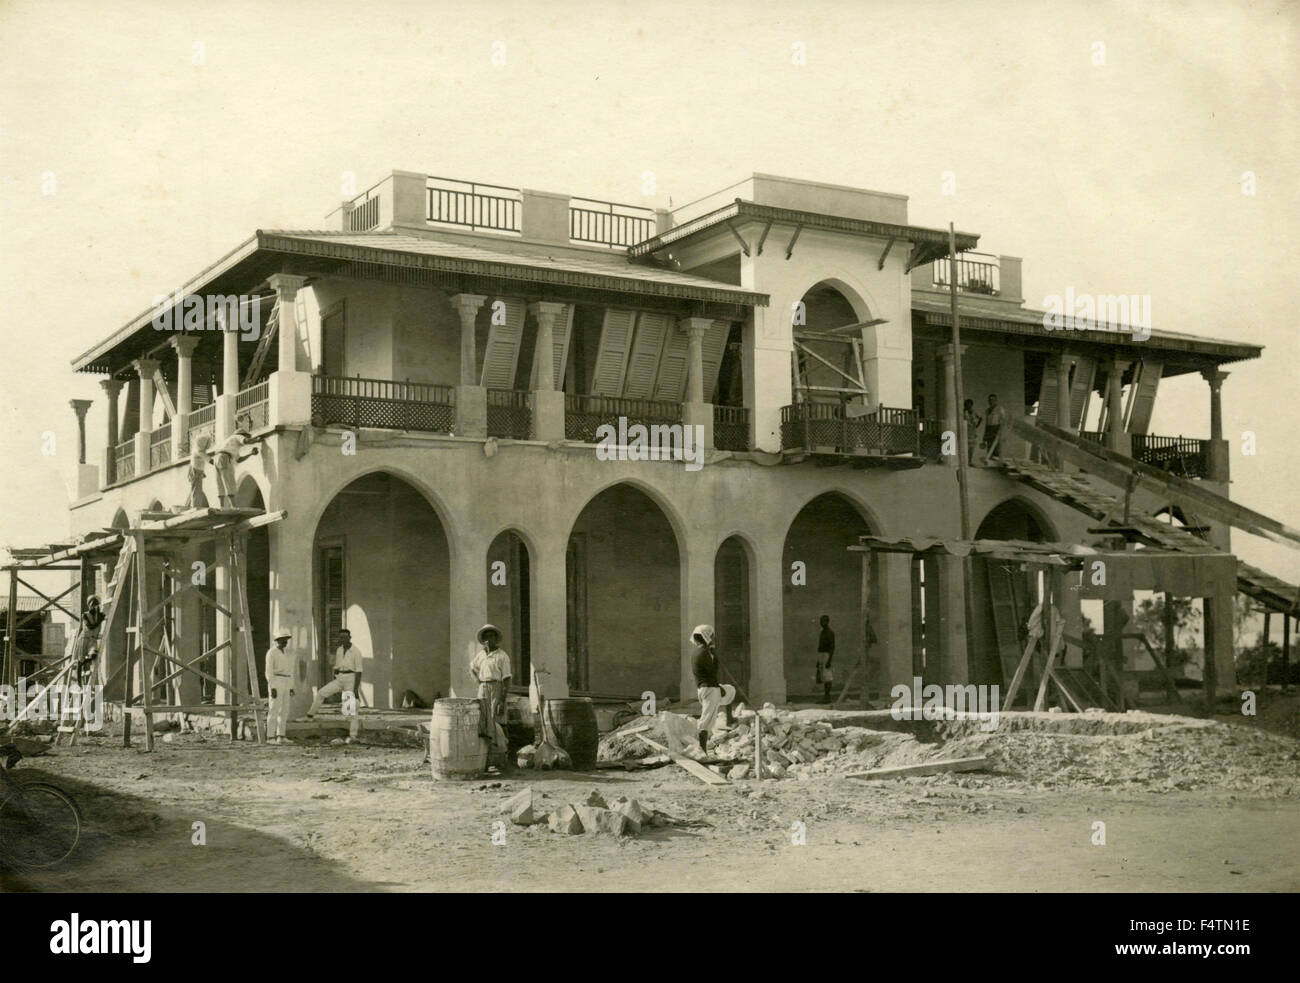 Construction work of an Italian farmhouse building in Africa - Stock Image